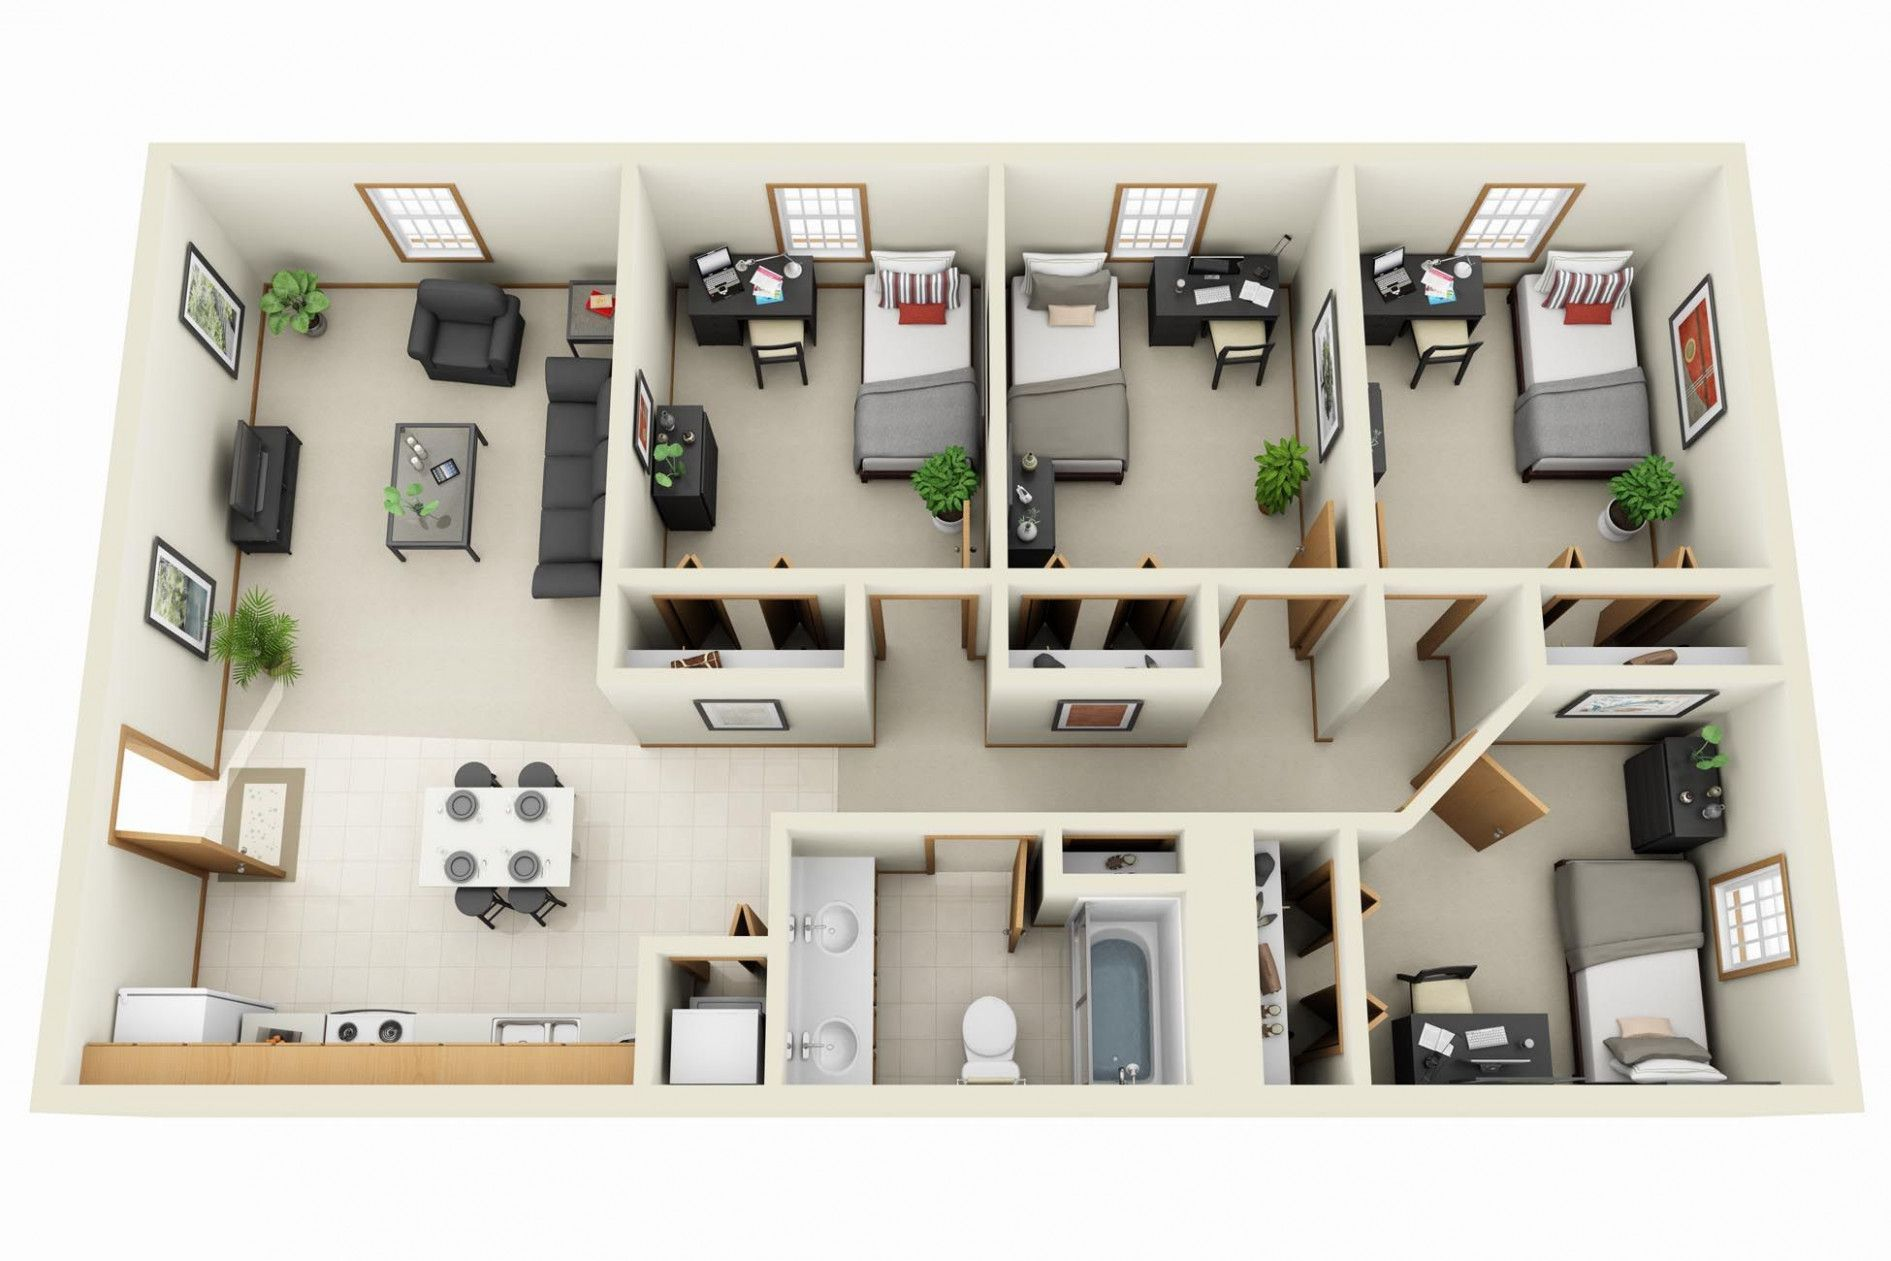 Bedroom Floor Plans Foroom Bath Apartments Amazing Pictures 4 Bedroom House Designs Apartment Floor Plans Apartment Floor Plan